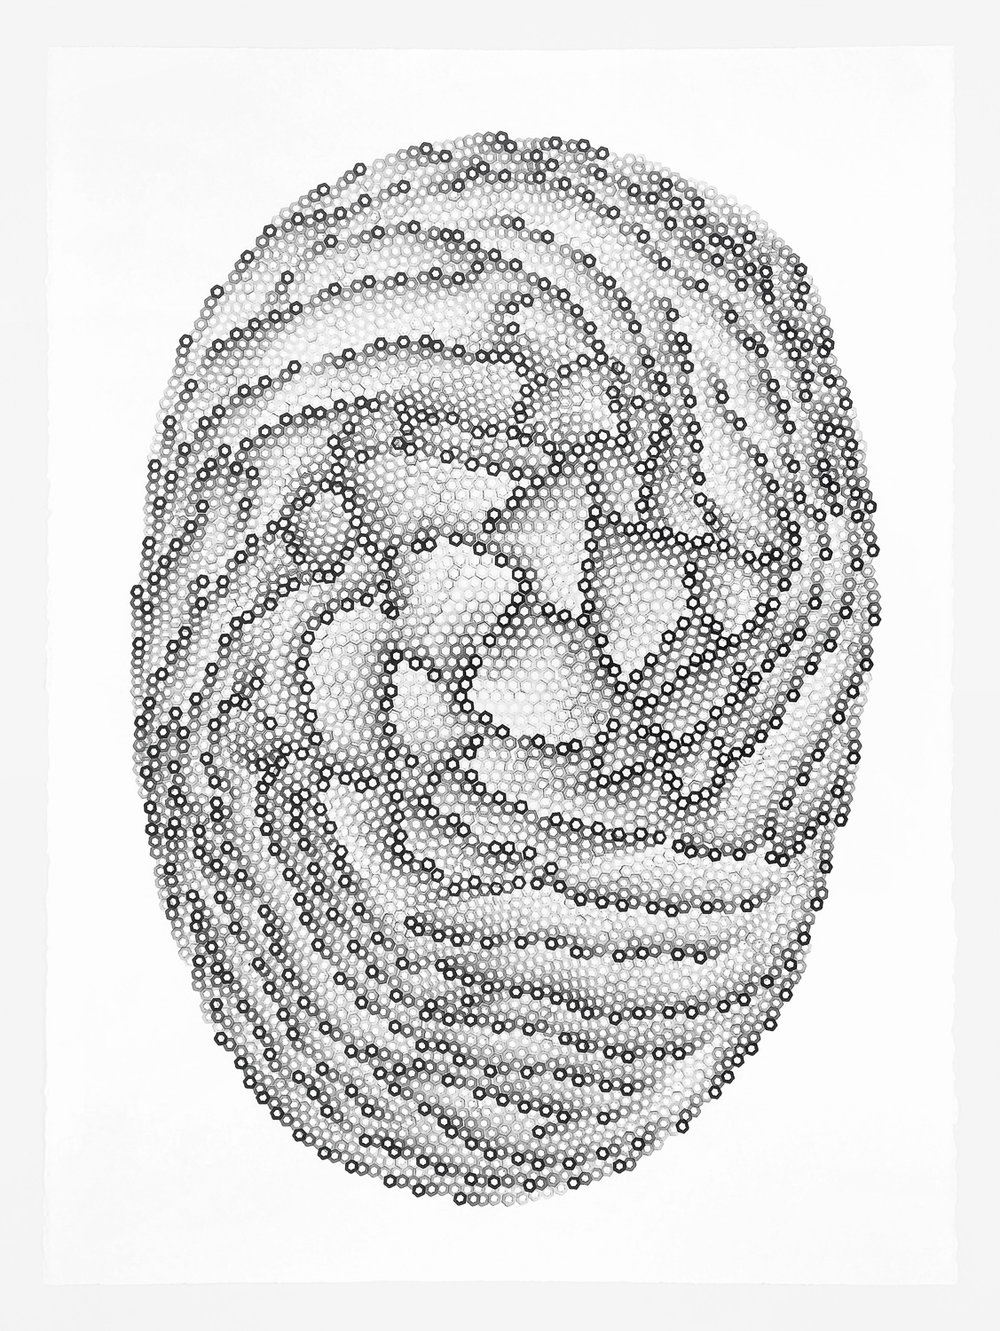 Hexagons 6,   2018   stamped archival ink on 140 lb hot press watercolor paper 30 x 22 in (76.2 x 55.9 cm)